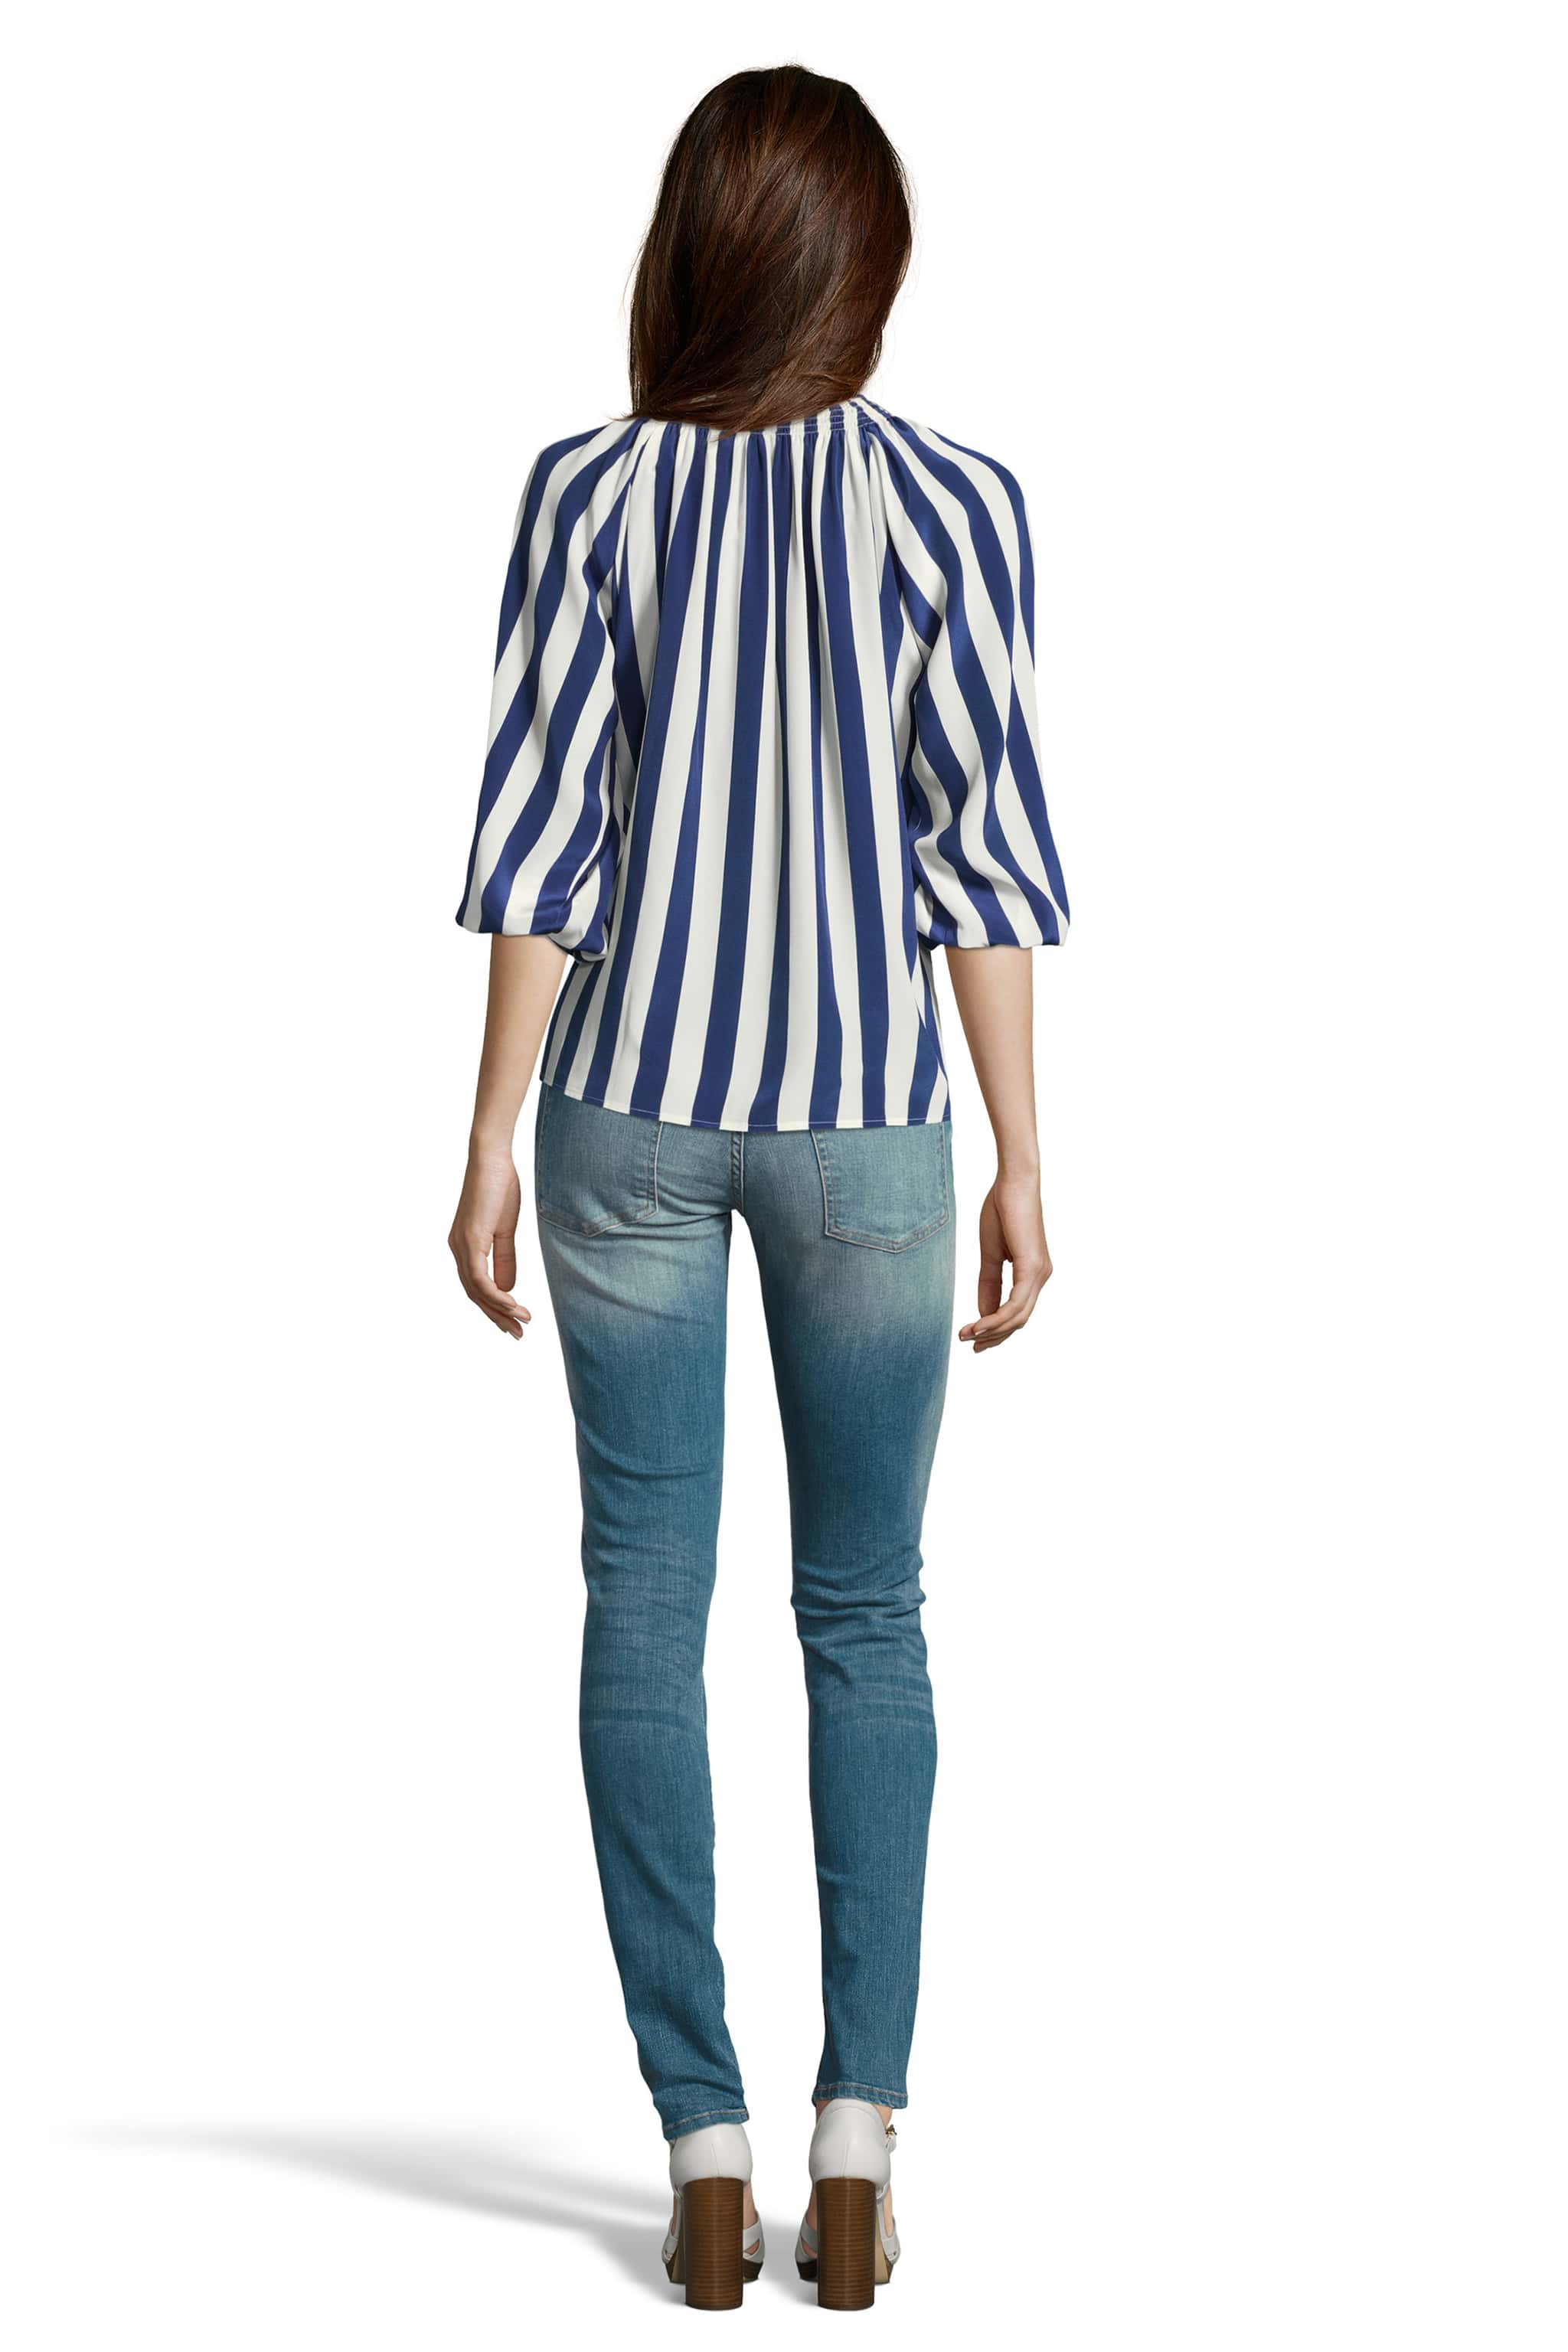 The Classic Blouse | Navy Stripe